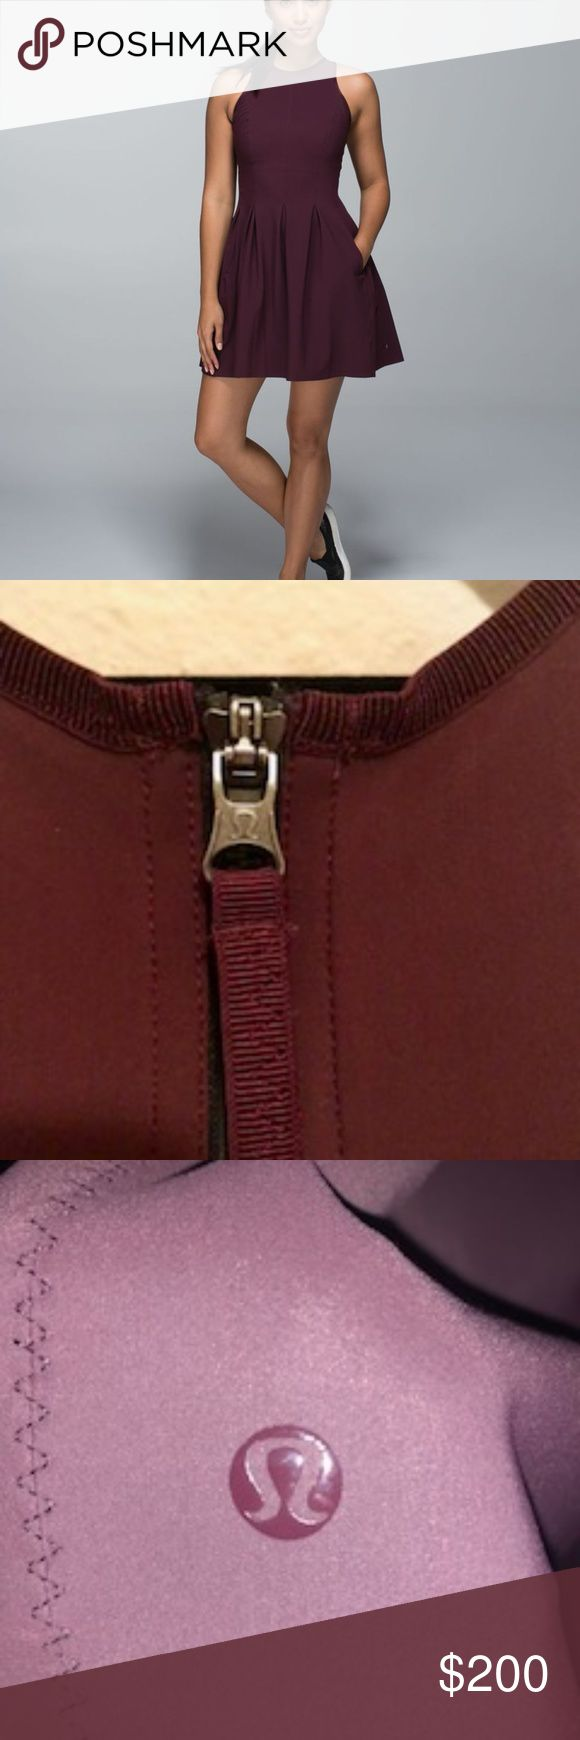 """lululemon """"Here to there"""" Dress """"Here to There"""" Dress in bordeaux. Perfect dress. lululemon athletica Dresses Midi"""